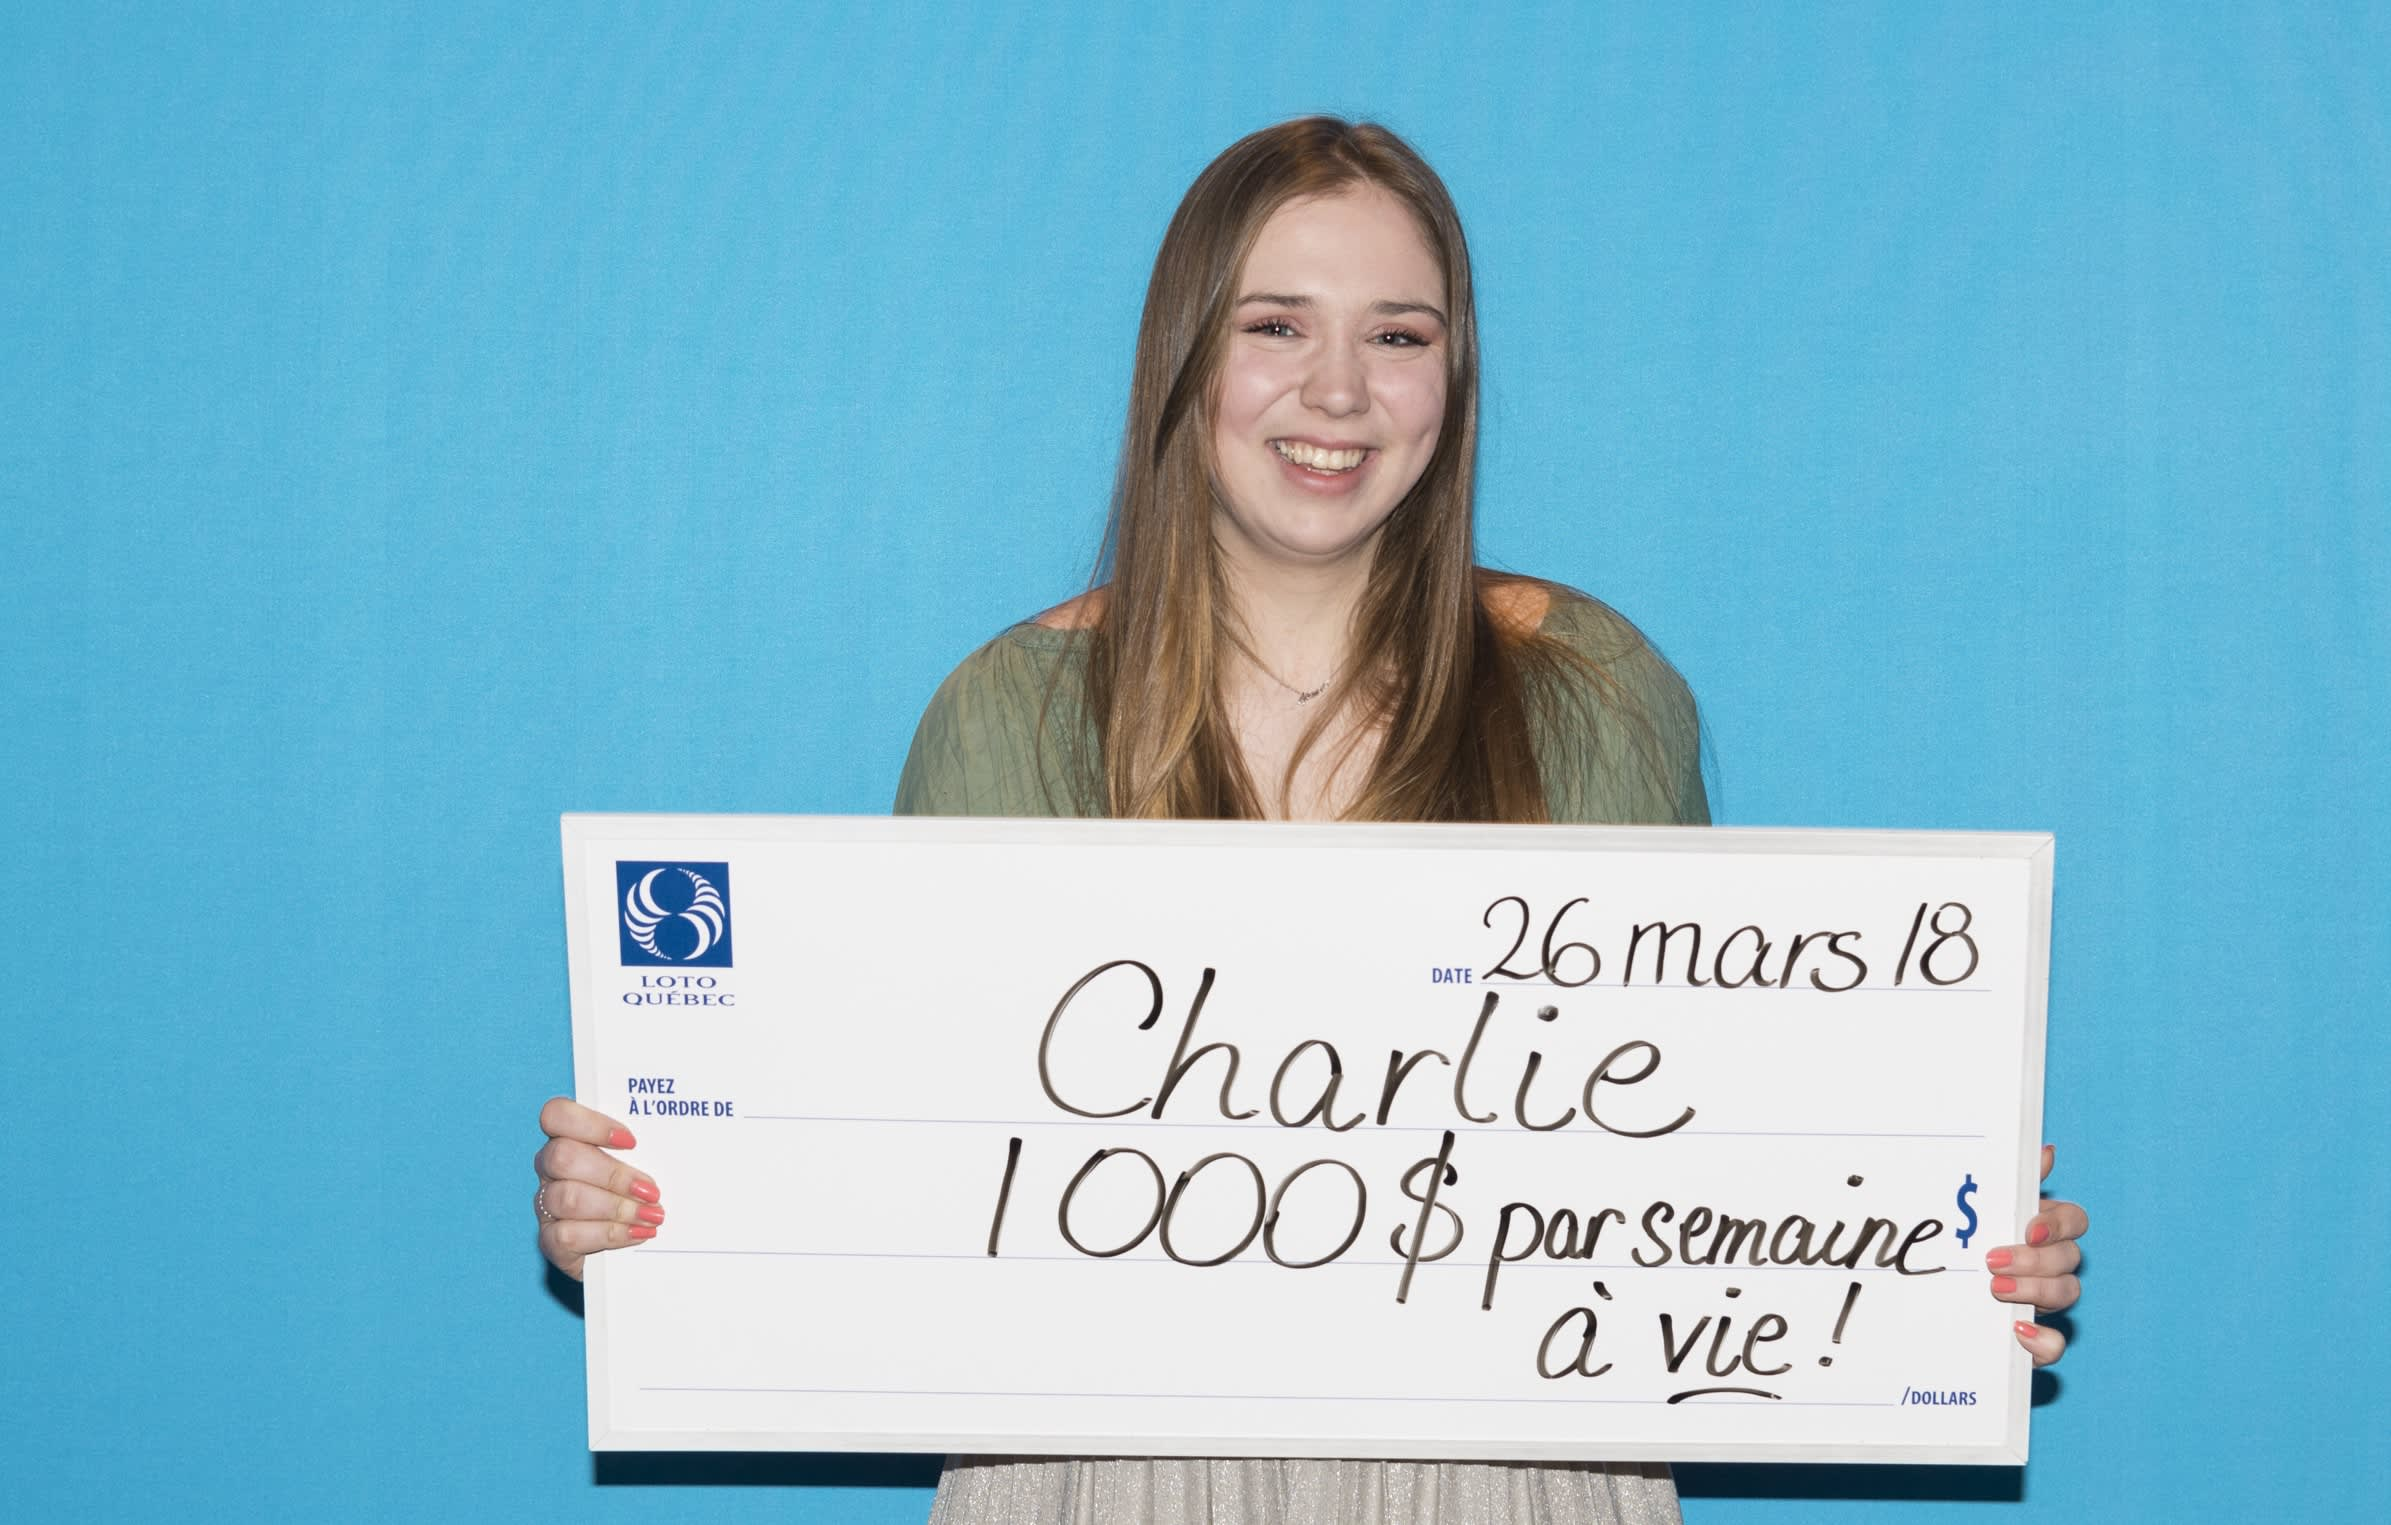 An 18-year-old won the lottery and she gets $1,000 a week